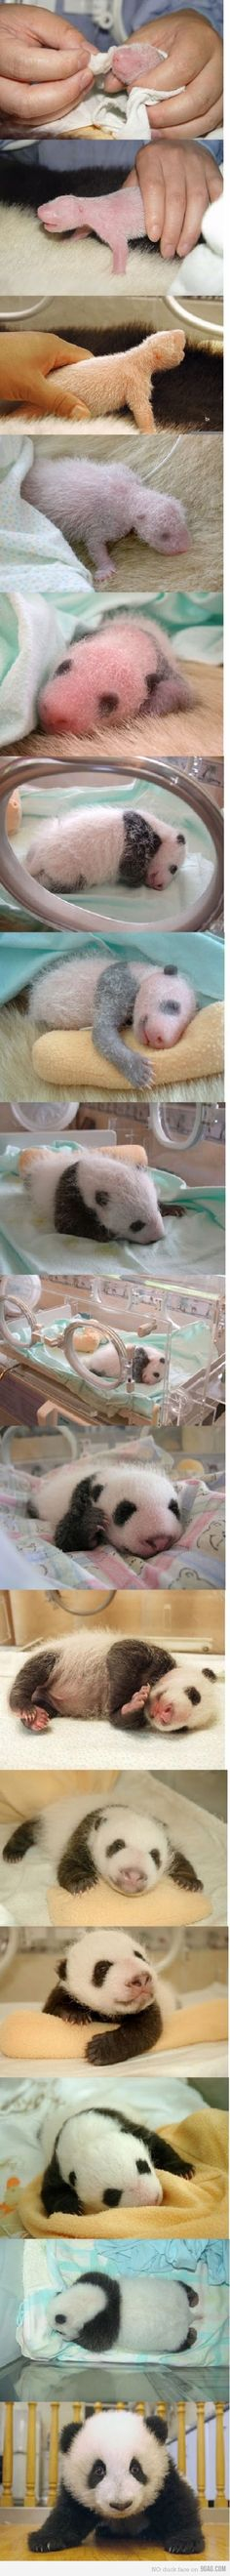 This is probably the cutest thing you've ever seen. Can I have it? Please.